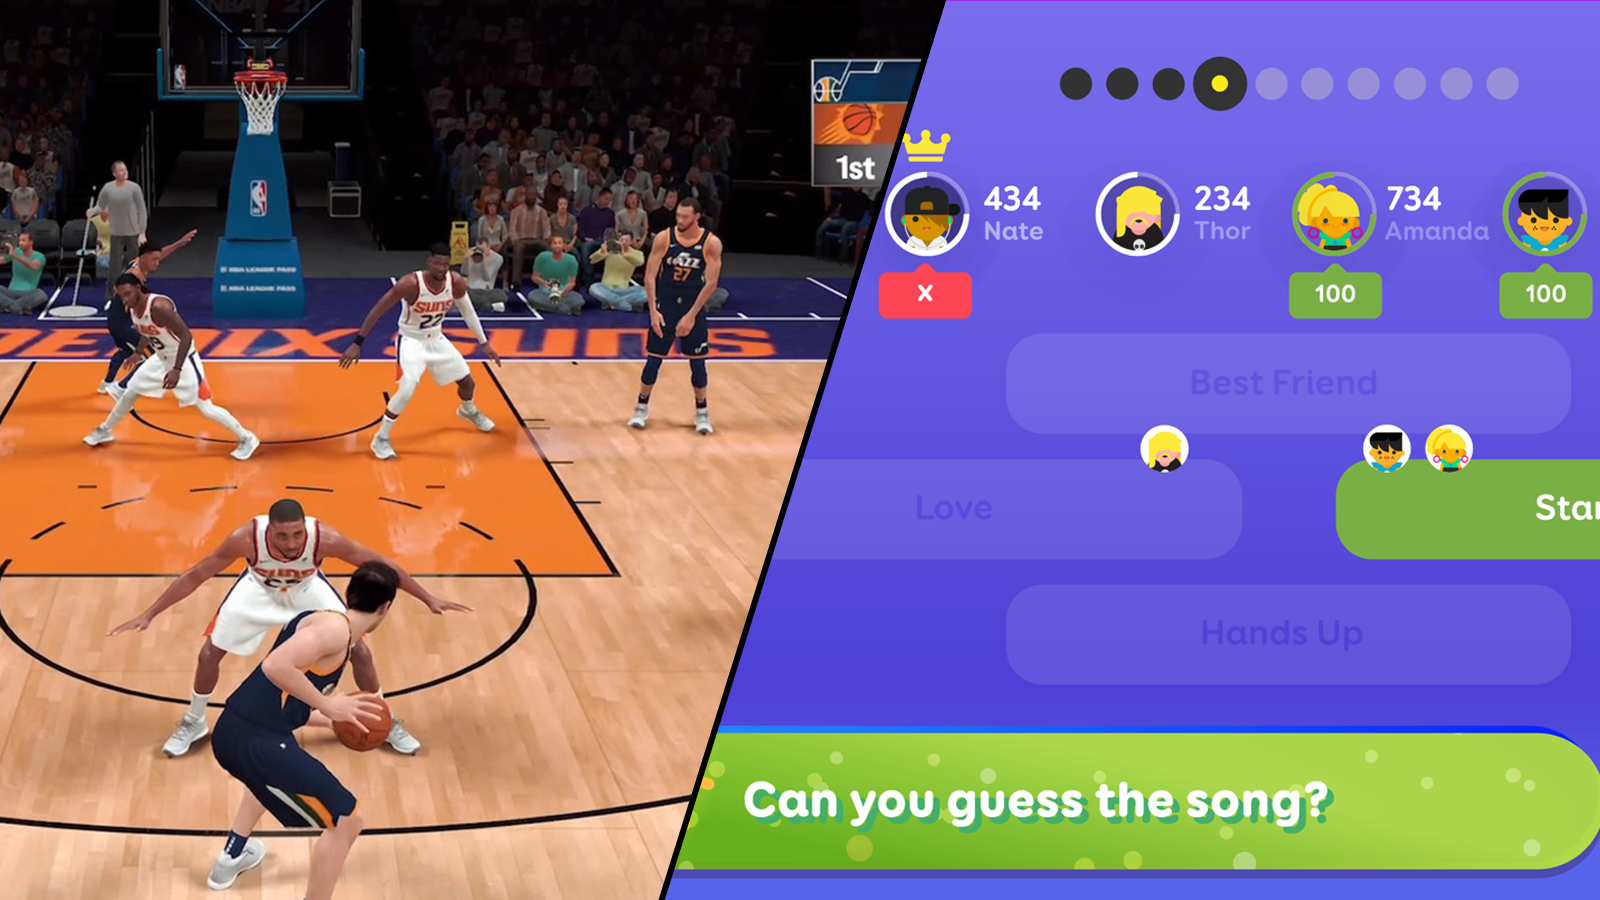 Splitscreen view of basketball game in NBA 2K21 and music question in SongPop Party